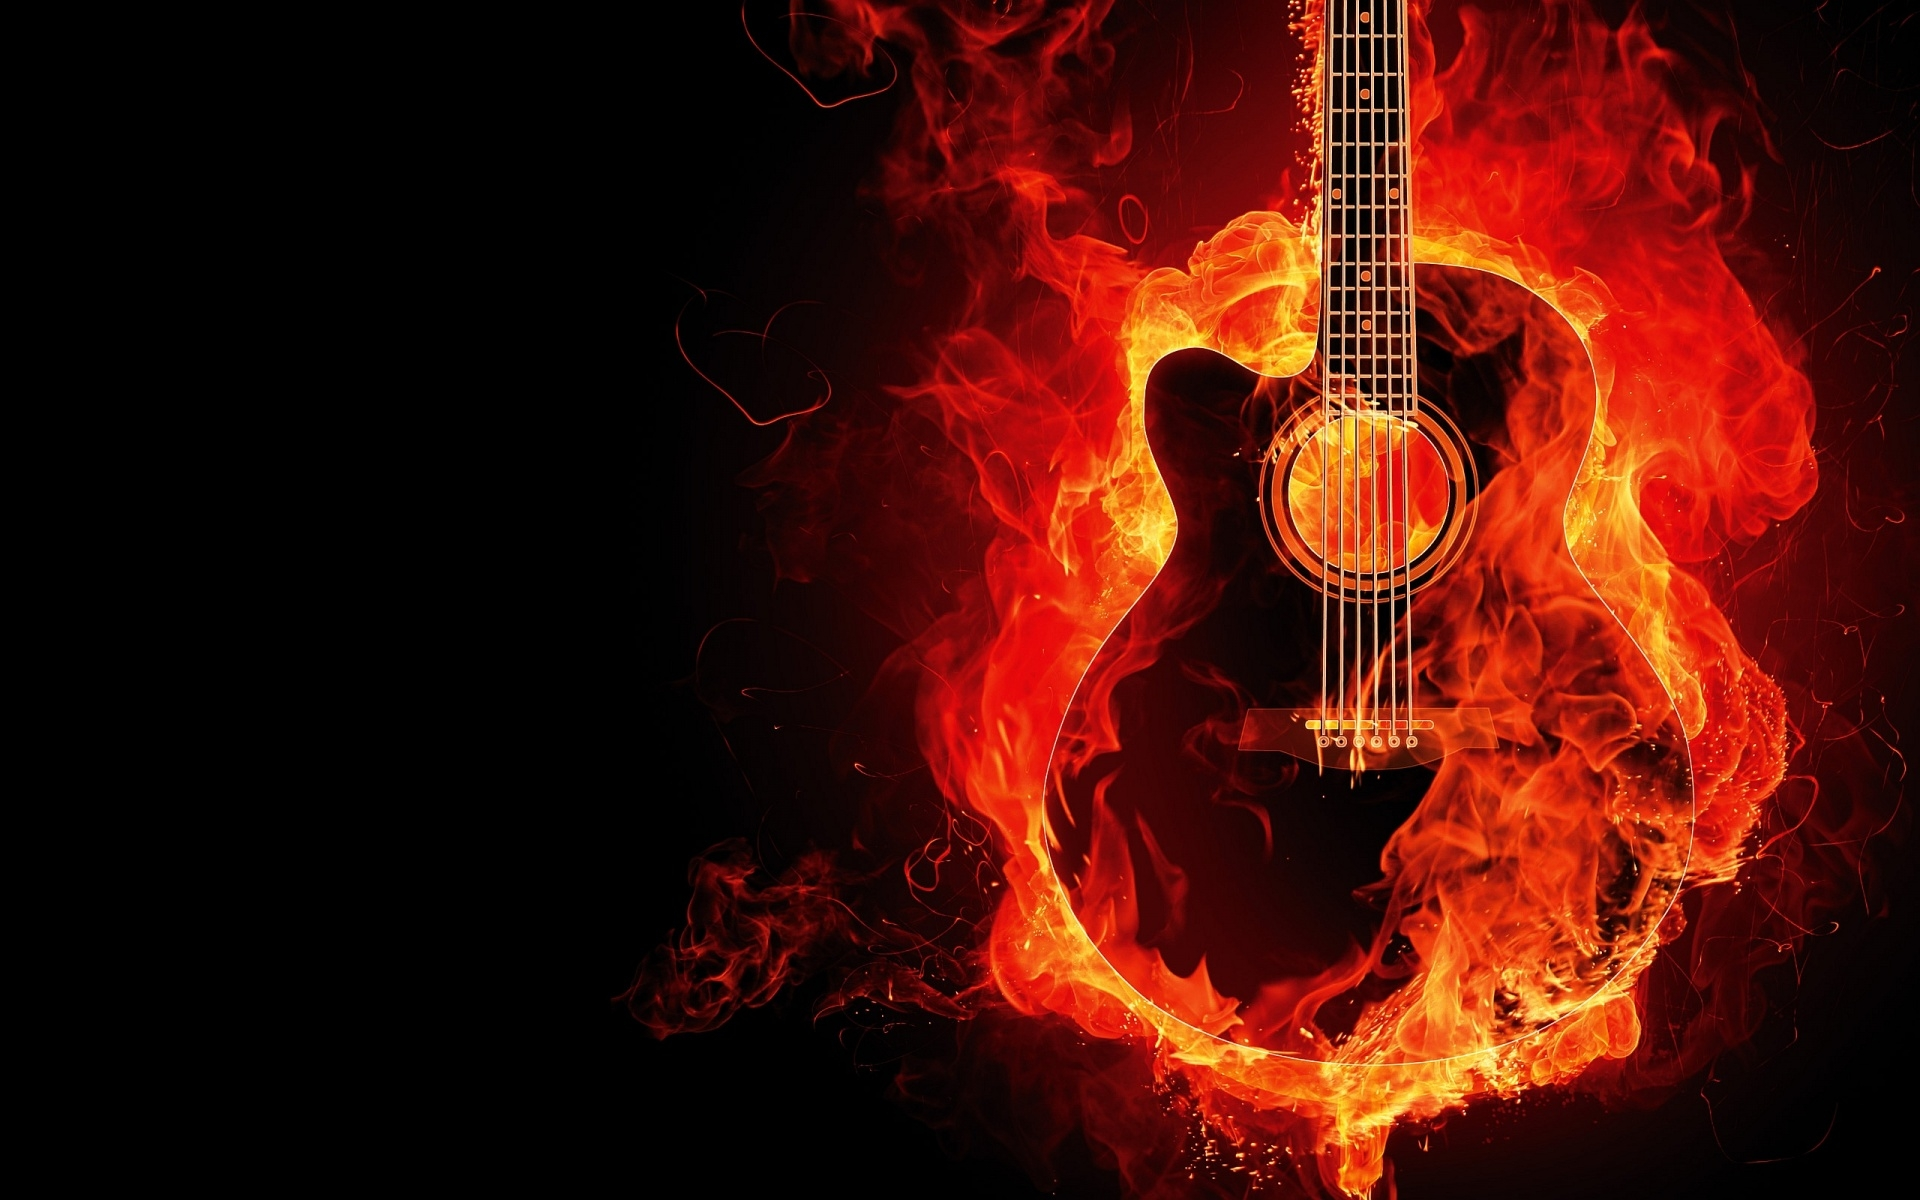 Free-cool-guitar-backgrounds-Download-Cool-Guitar-Backgrounds-afari-for-Free-cool-guit-wallpaper-wp3405822